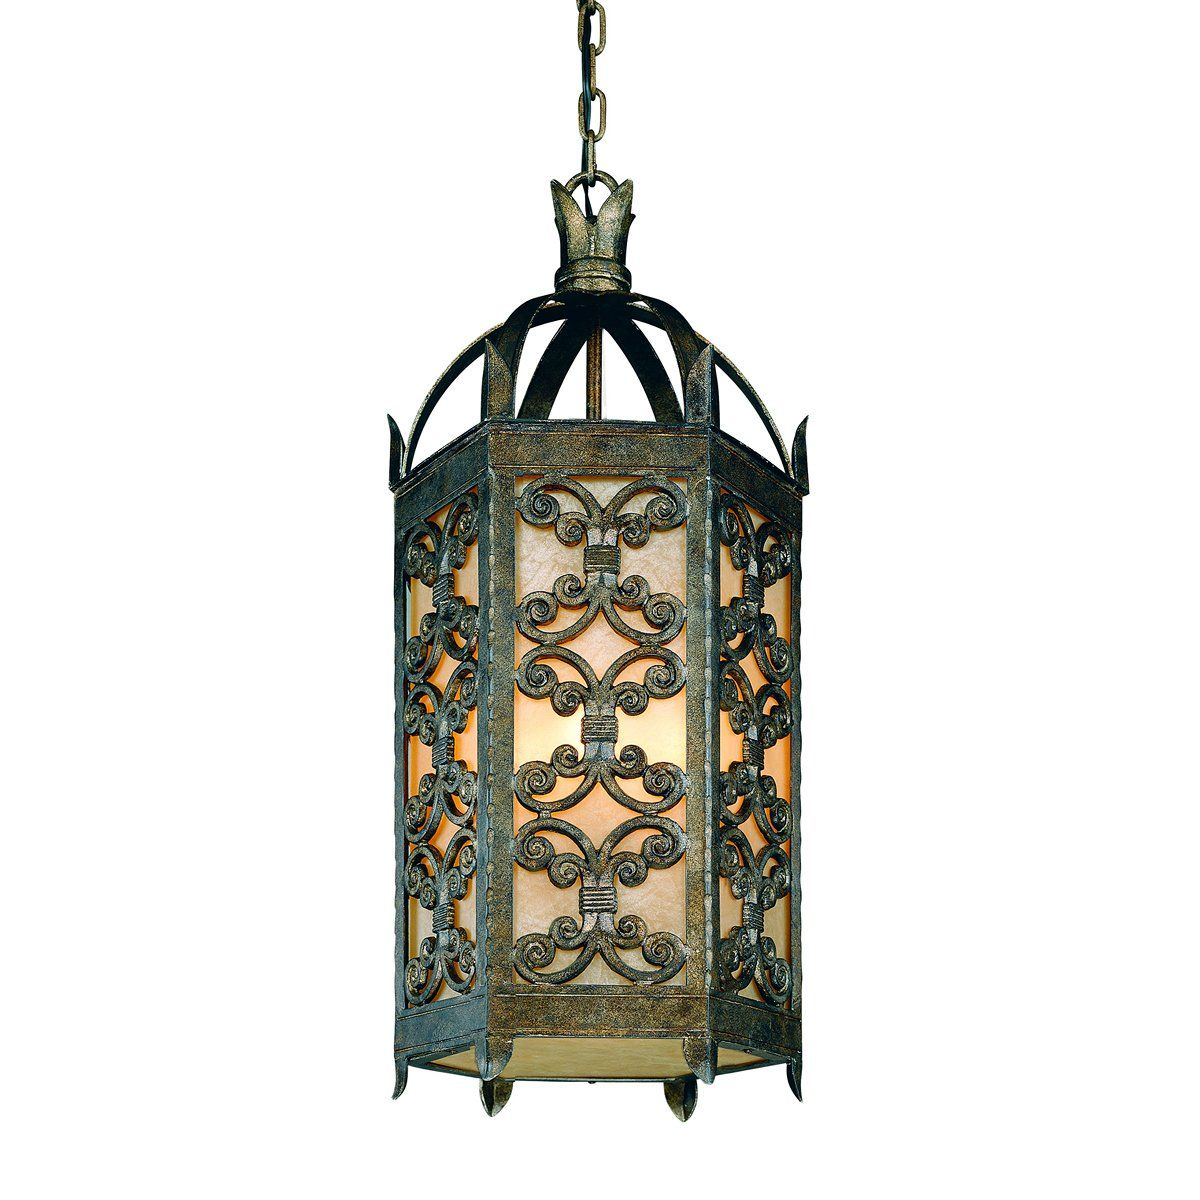 Troy Lighting F9908cg 4 Light Gables Large Pendent Outdoor Pendant Charred Gold